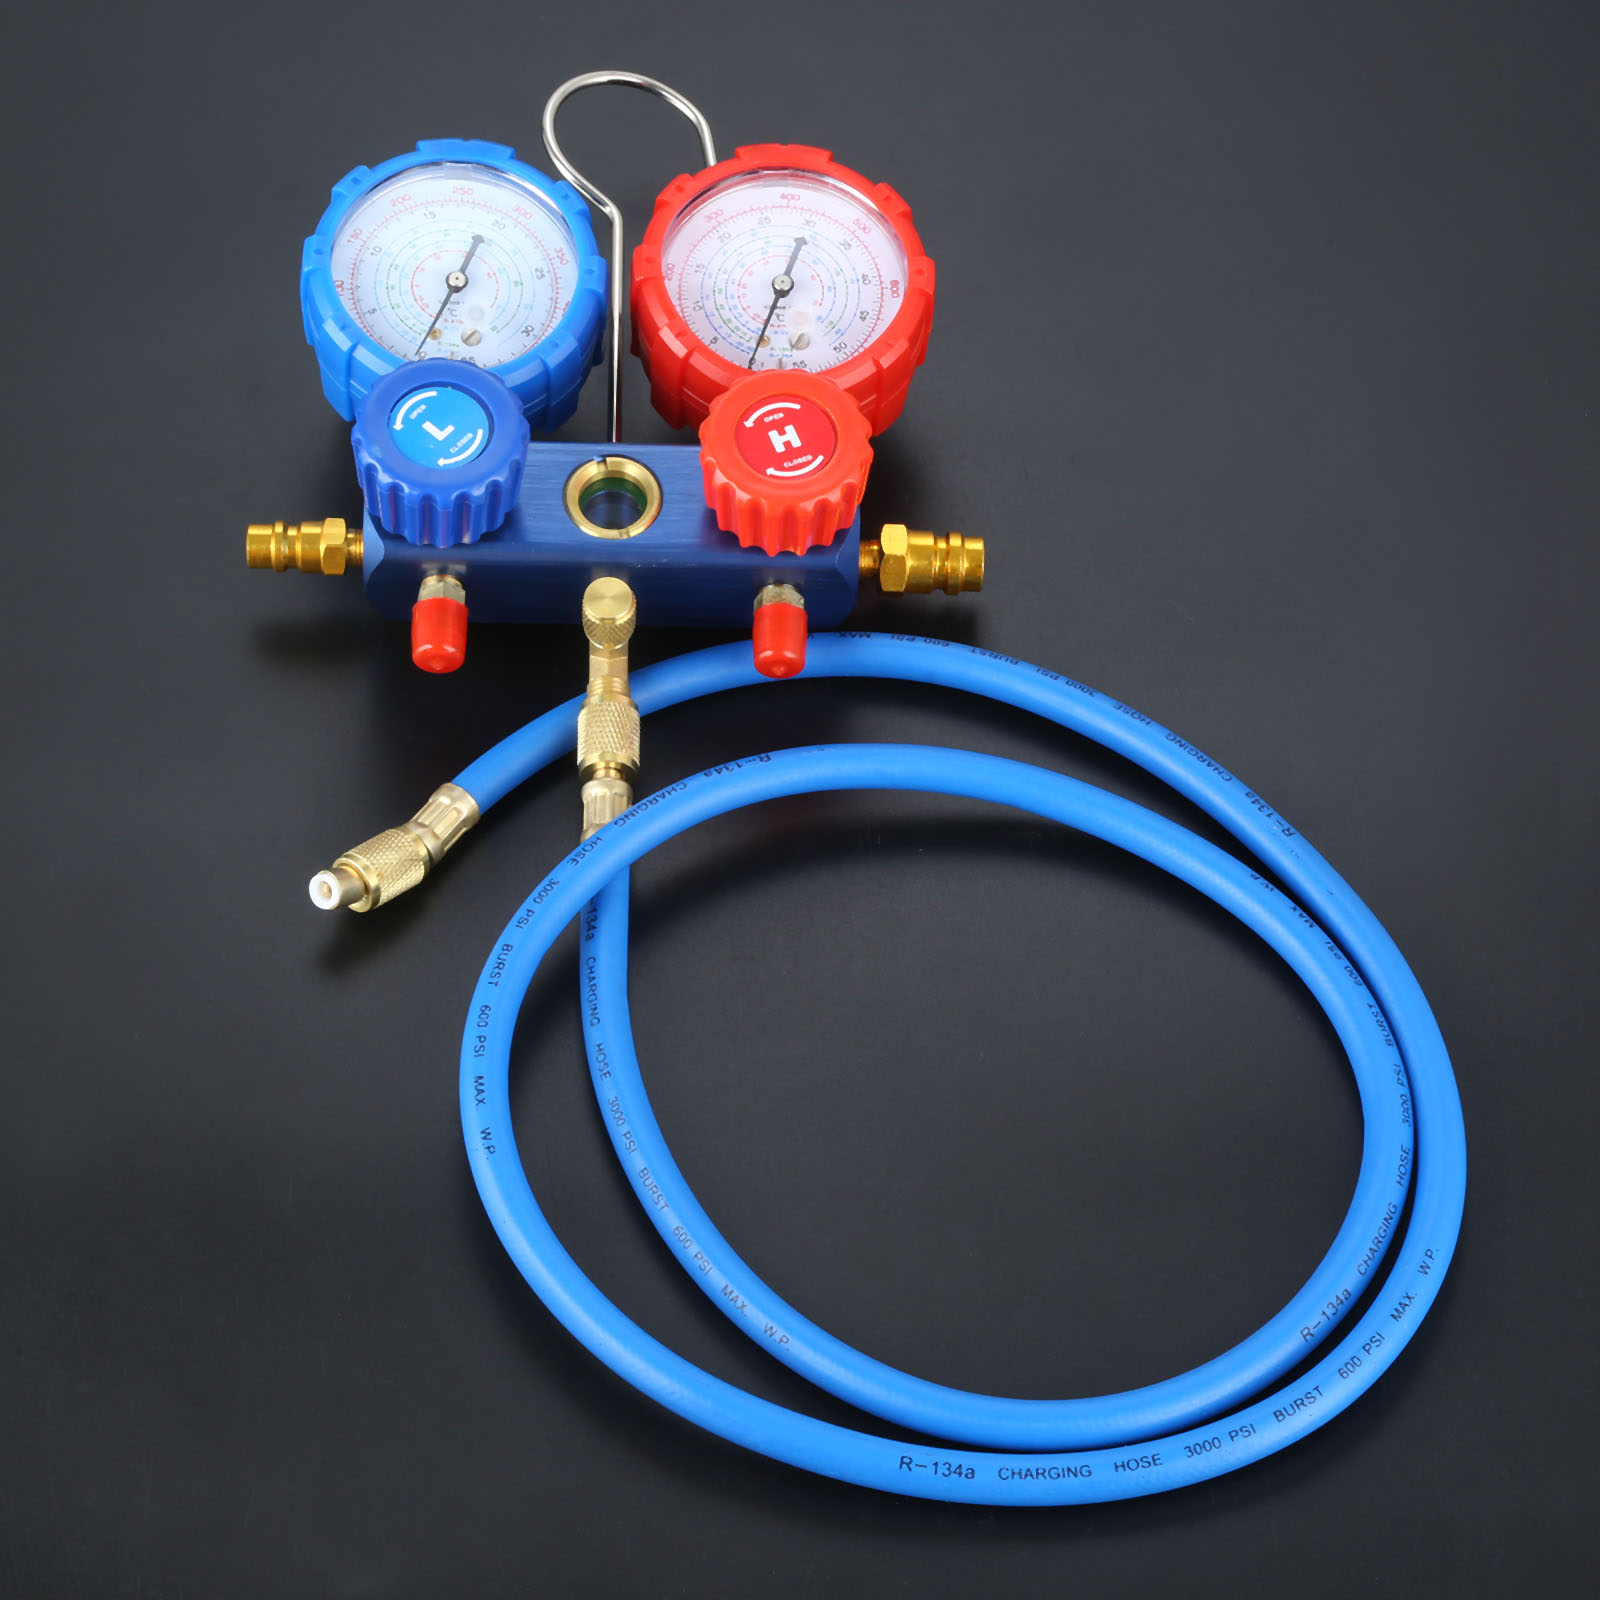 Image 5 - R134a R12 R22 R502 Manifold Gauge Set HVAC AC Refrigerant w/ 5ft Charging Hoses 36 Hoses R134 Quick Couplers+ACME Adapter 600Psi-in Air-conditioning Installation from Automobiles & Motorcycles